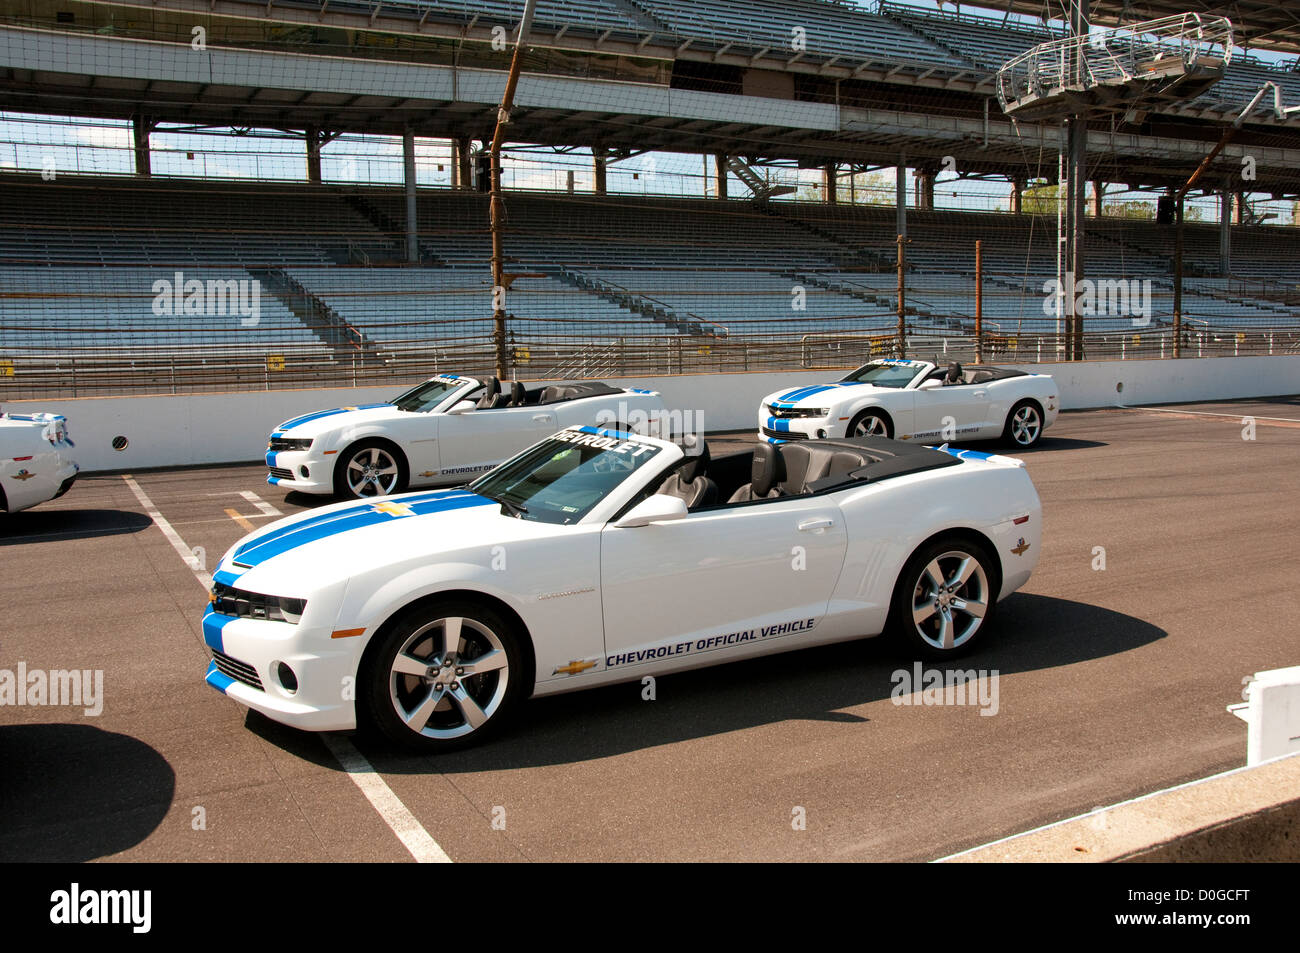 USA, Indiana, Indianapolis Motor Speedway, pace cars during off season scene of the annual Indy 500 car race. Stock Photo